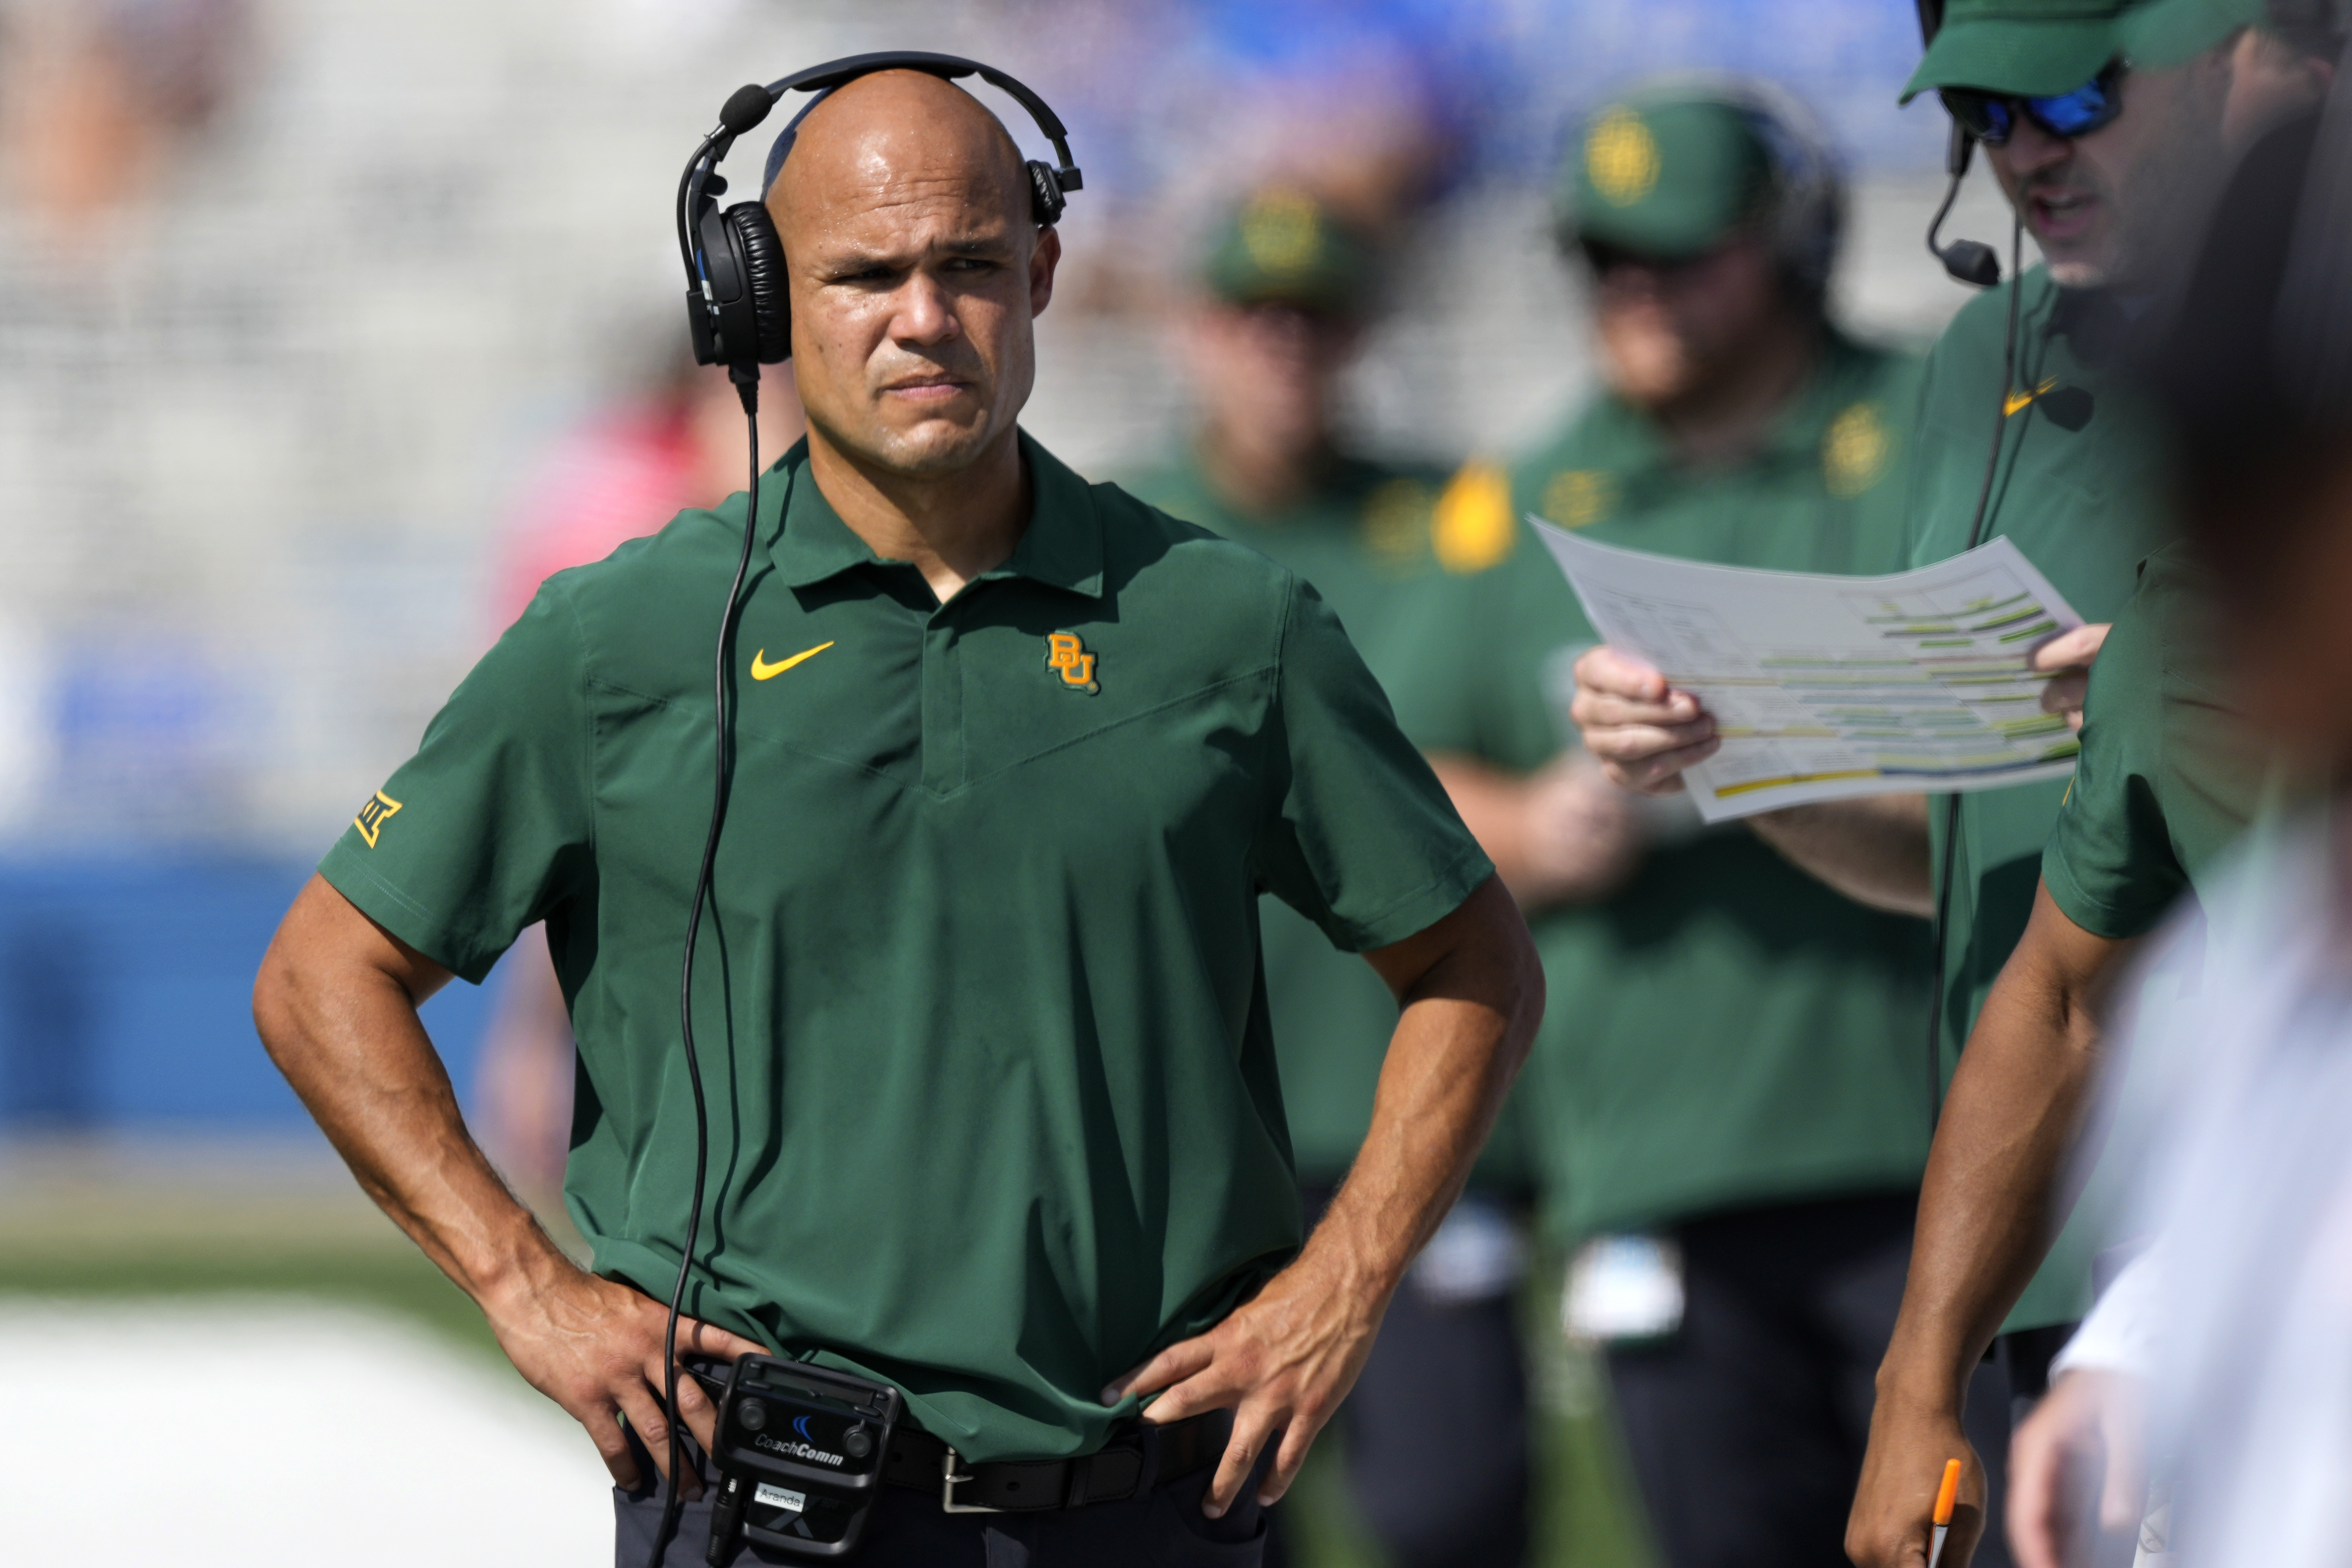 Baylor head coach Dave Aranda walks the sidelines during game against Kansas in Lawrence, Kan., Saturday, Sept. 18 2021.